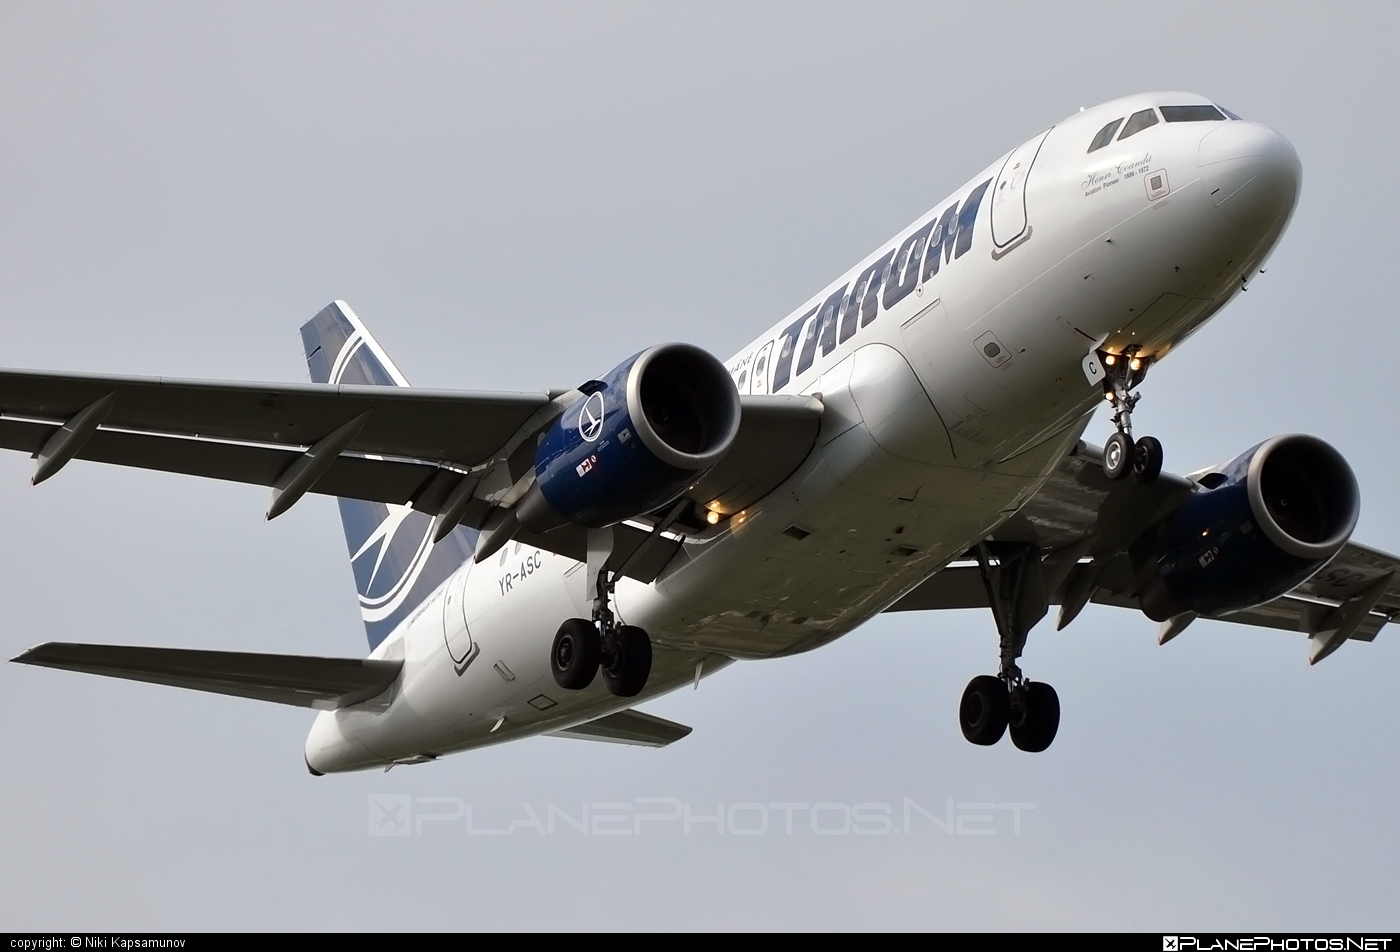 Airbus A318-121 - YR-ASC operated by Tarom #a318 #a320family #airbus #airbus318